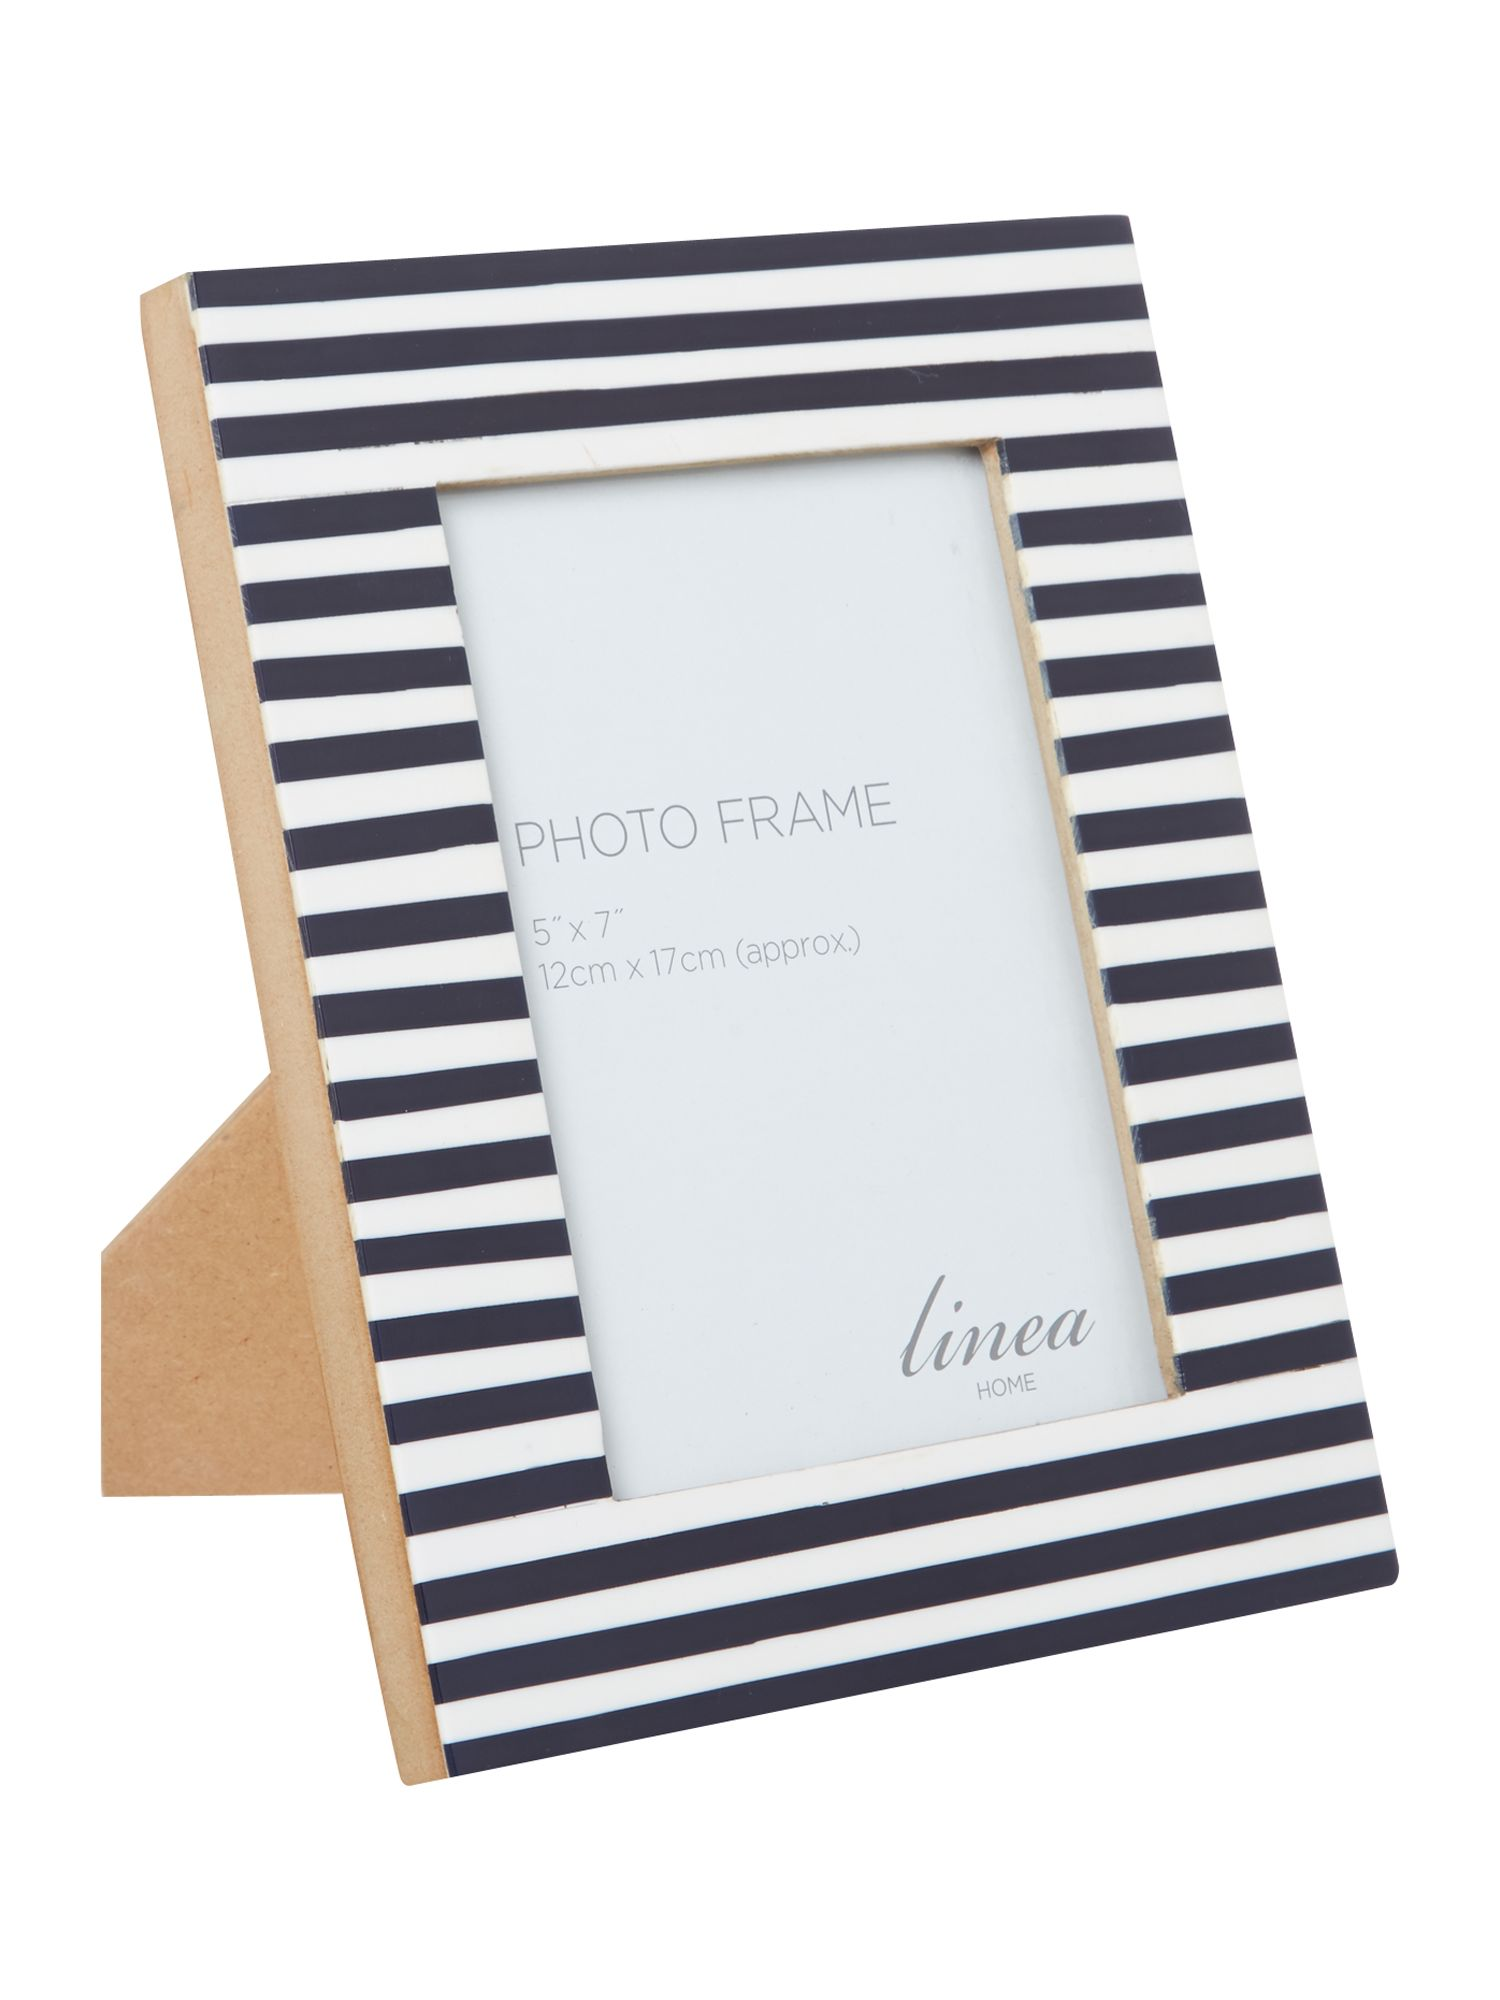 Nautical navy striped frame 5x7